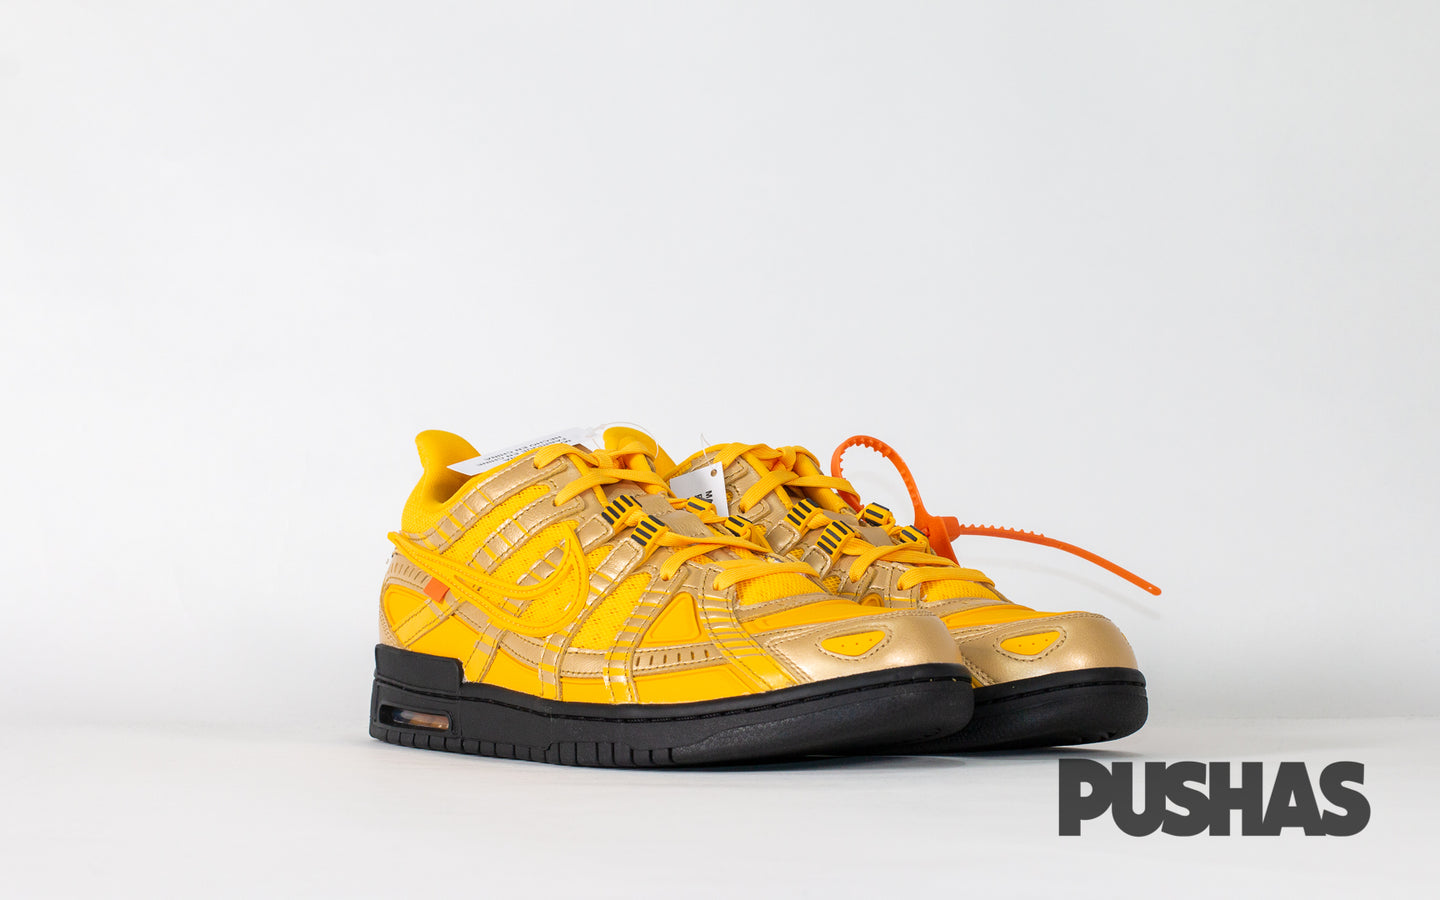 pushas-nike-Air-Rubber-Dunk-Off-White-University-Gold